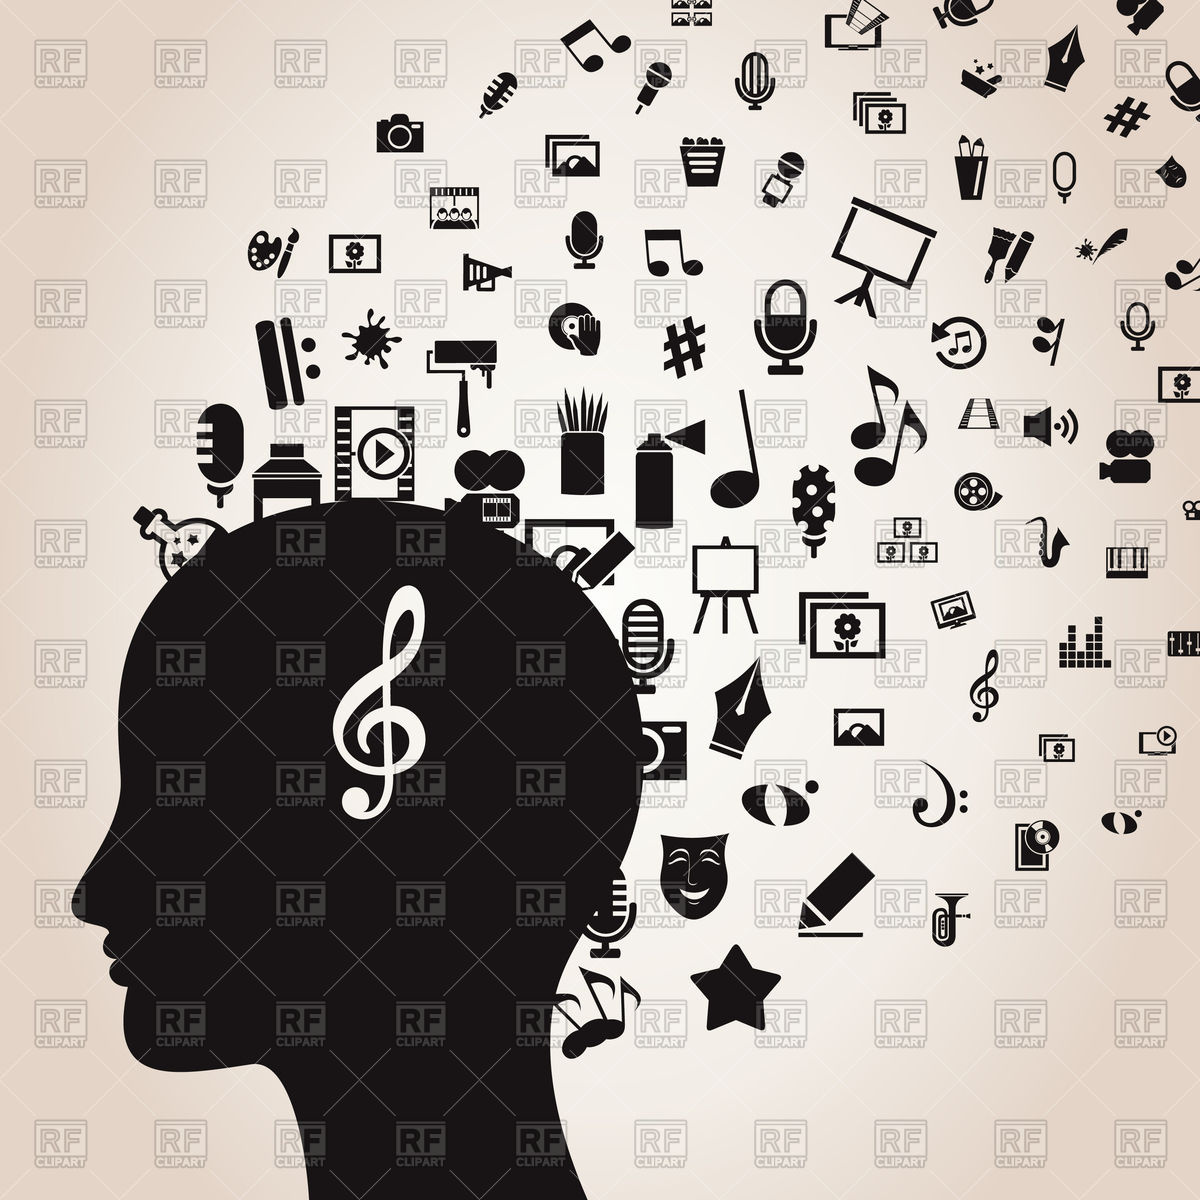 1200x1200 Silhouette Of Head With Music And Arts In Mind Vector Image